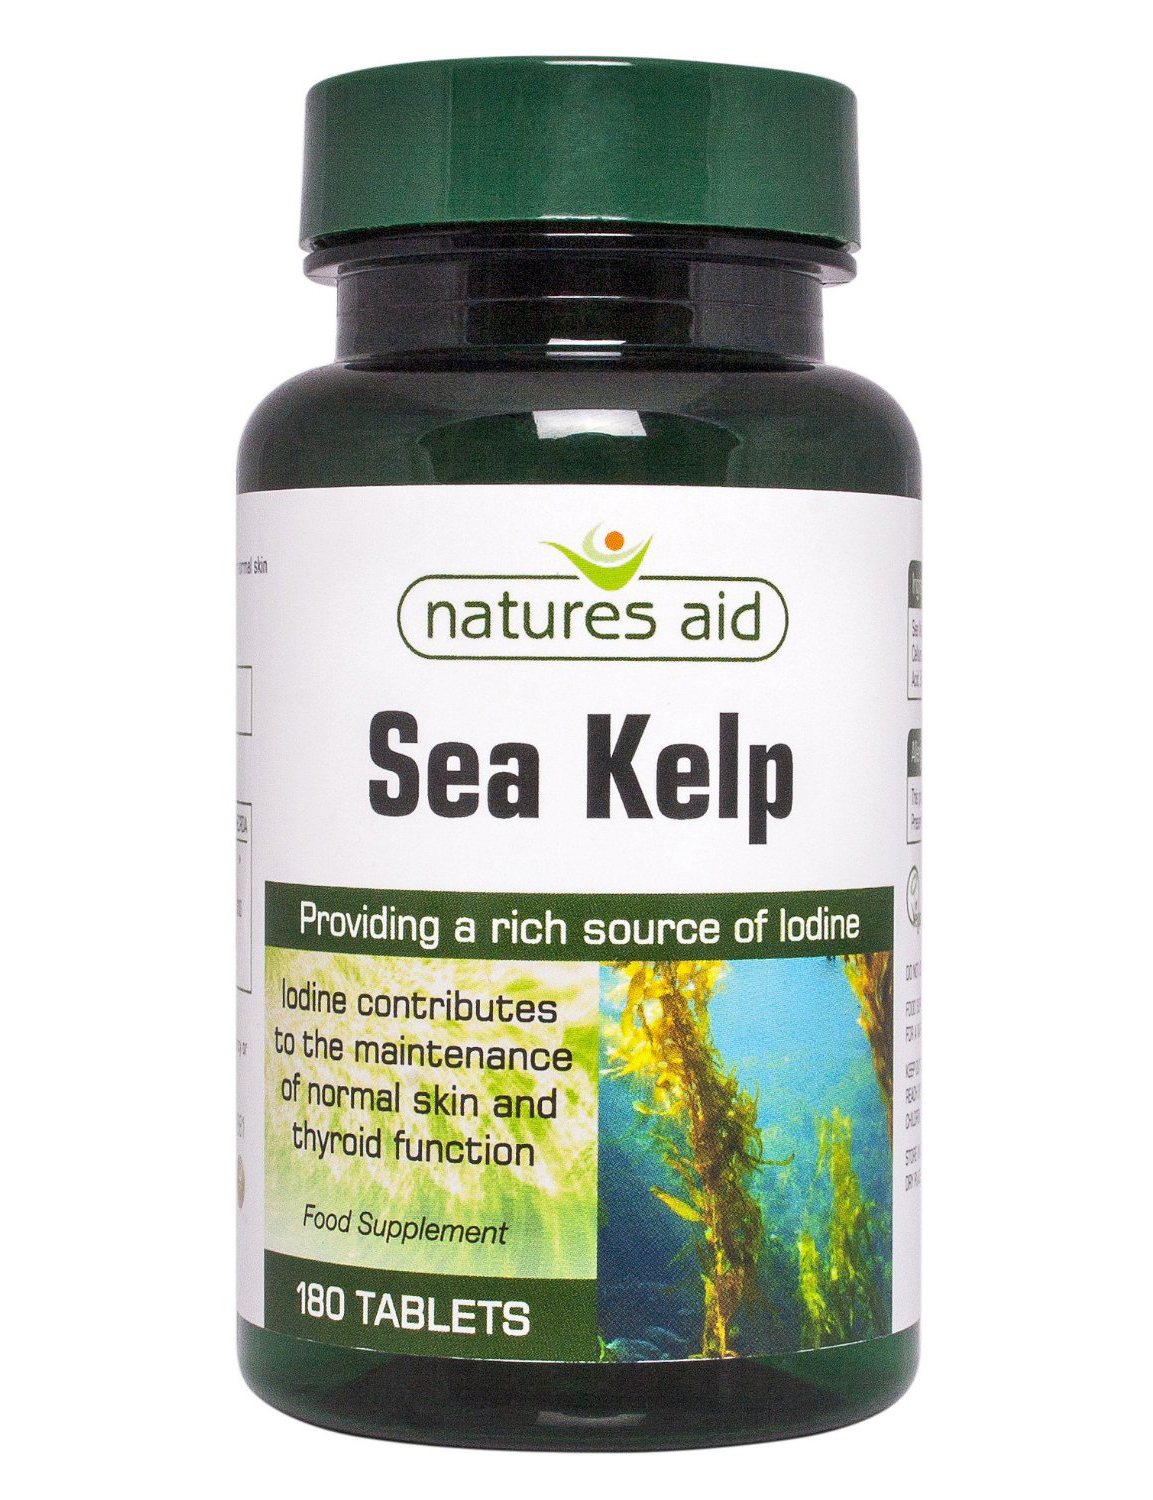 natures aid sea kelp 180 tablets rich in iodine